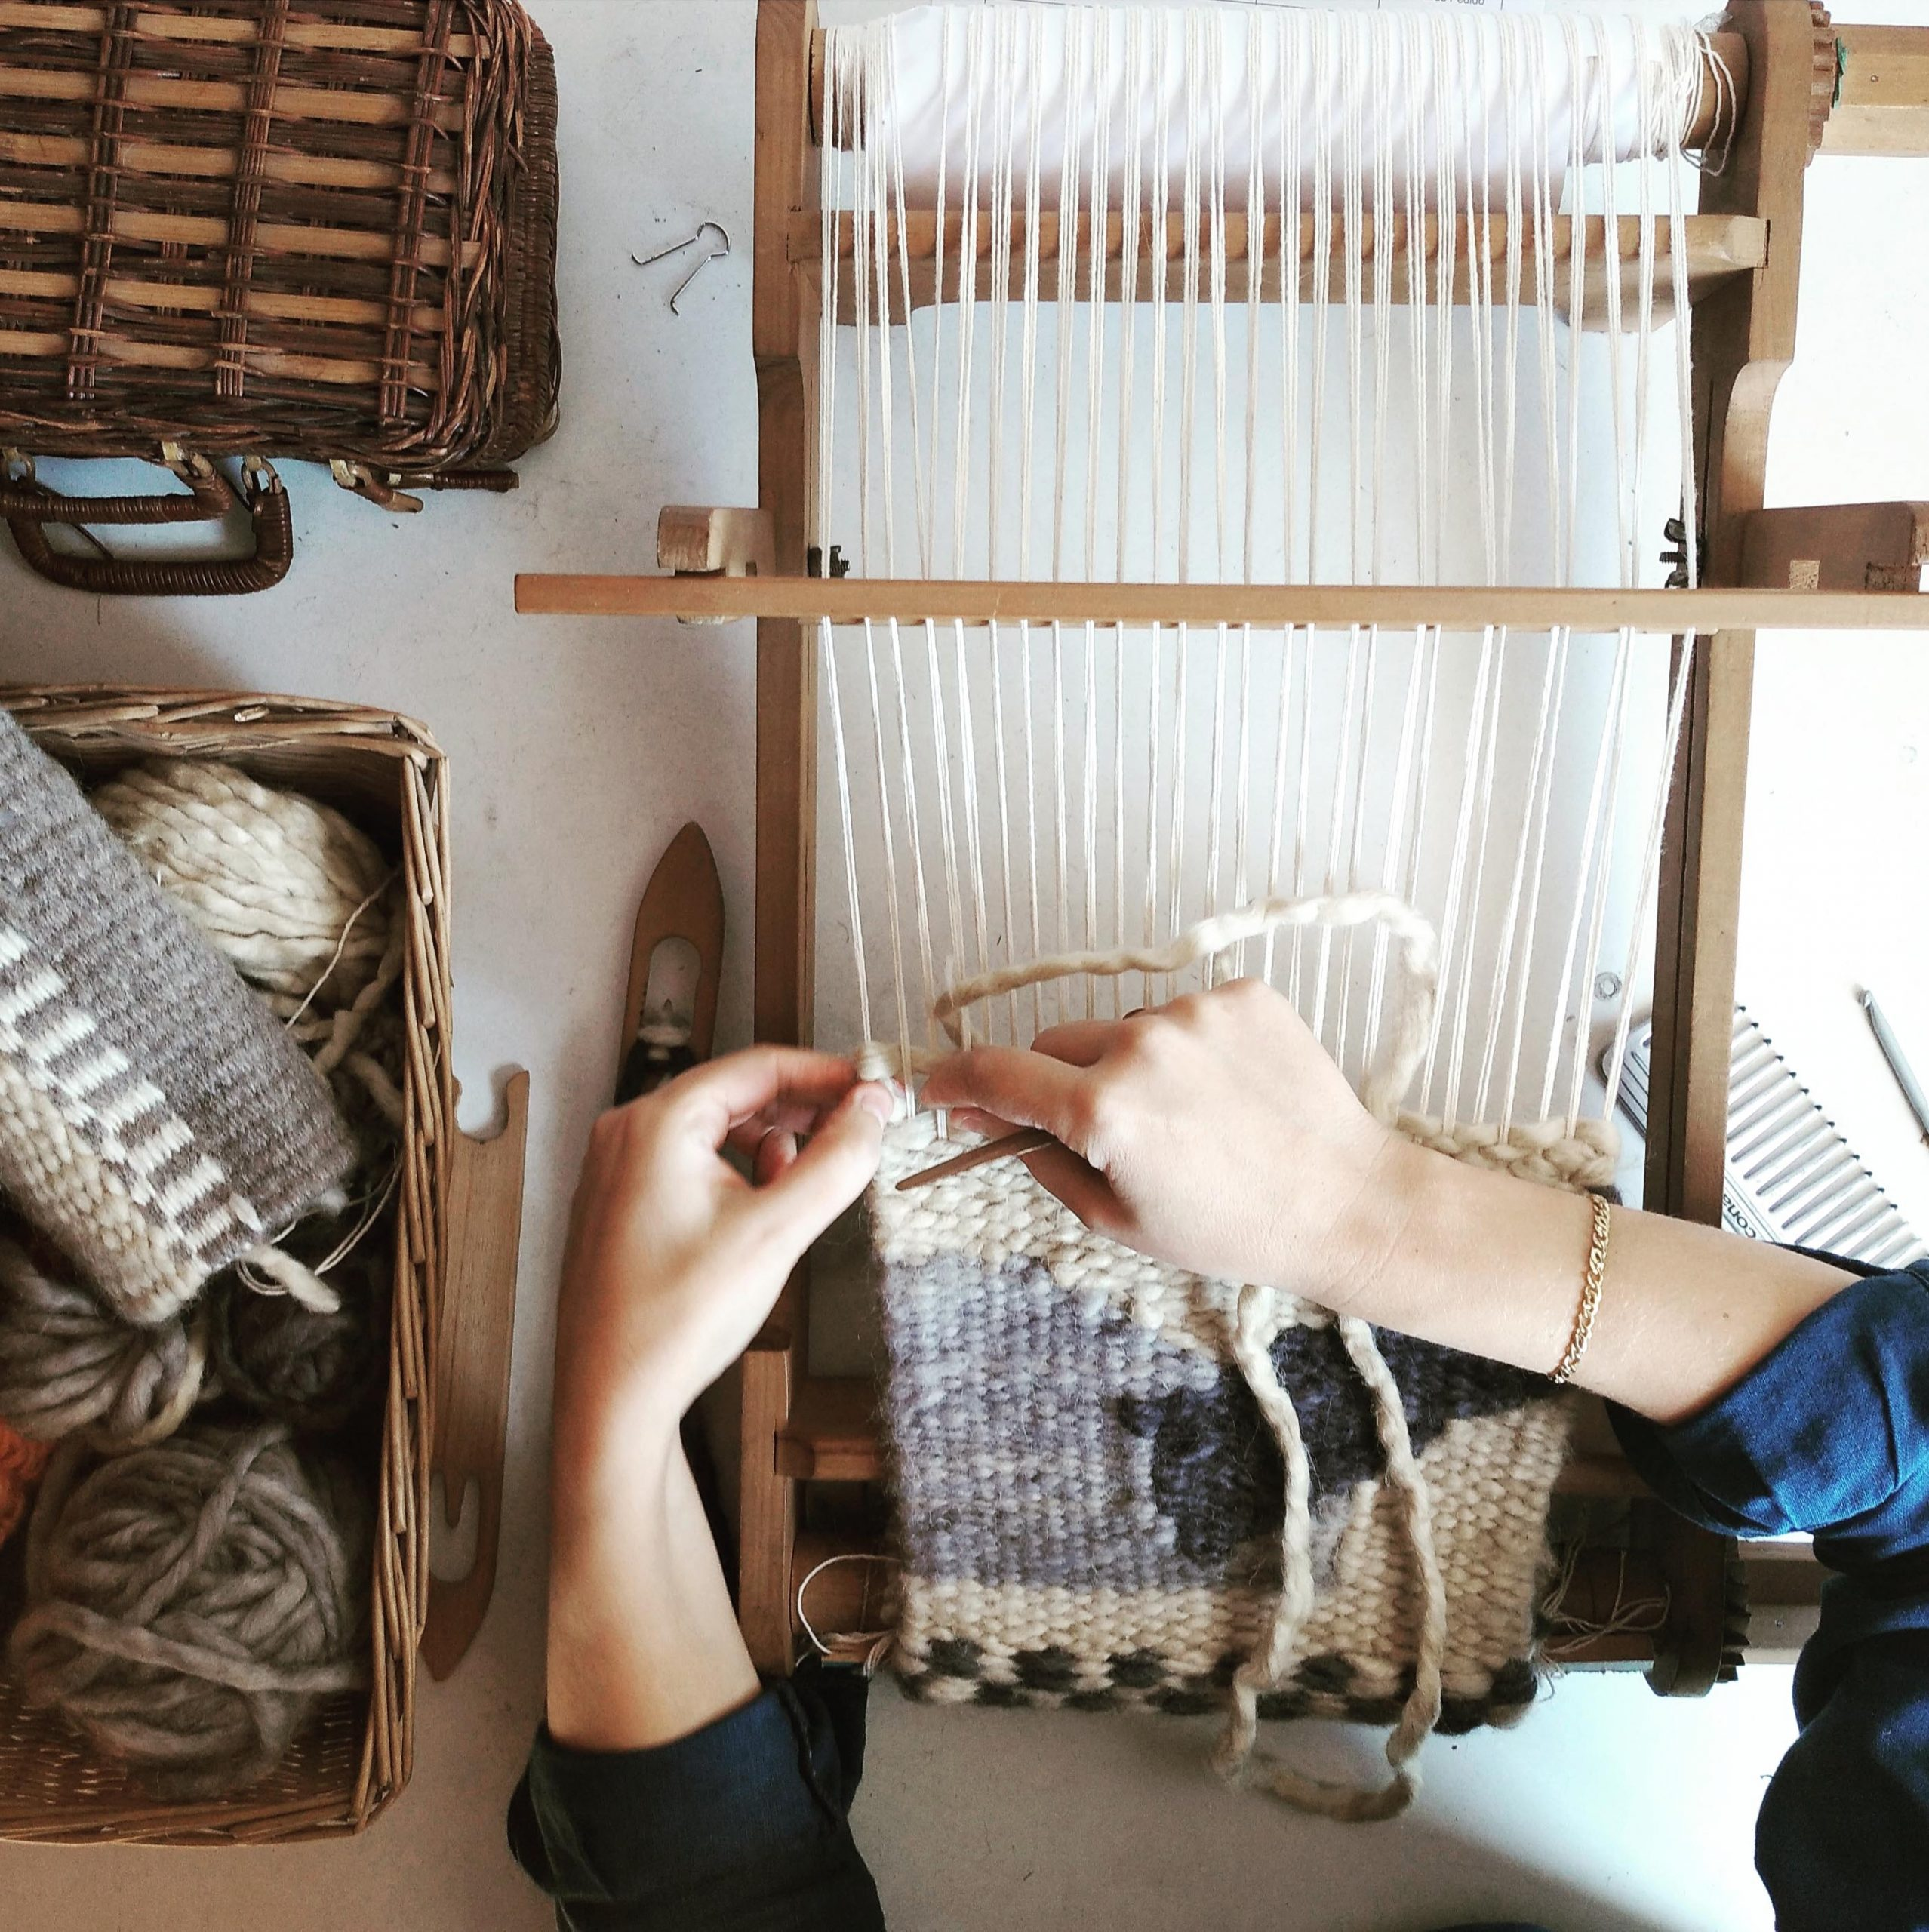 The act of weaving